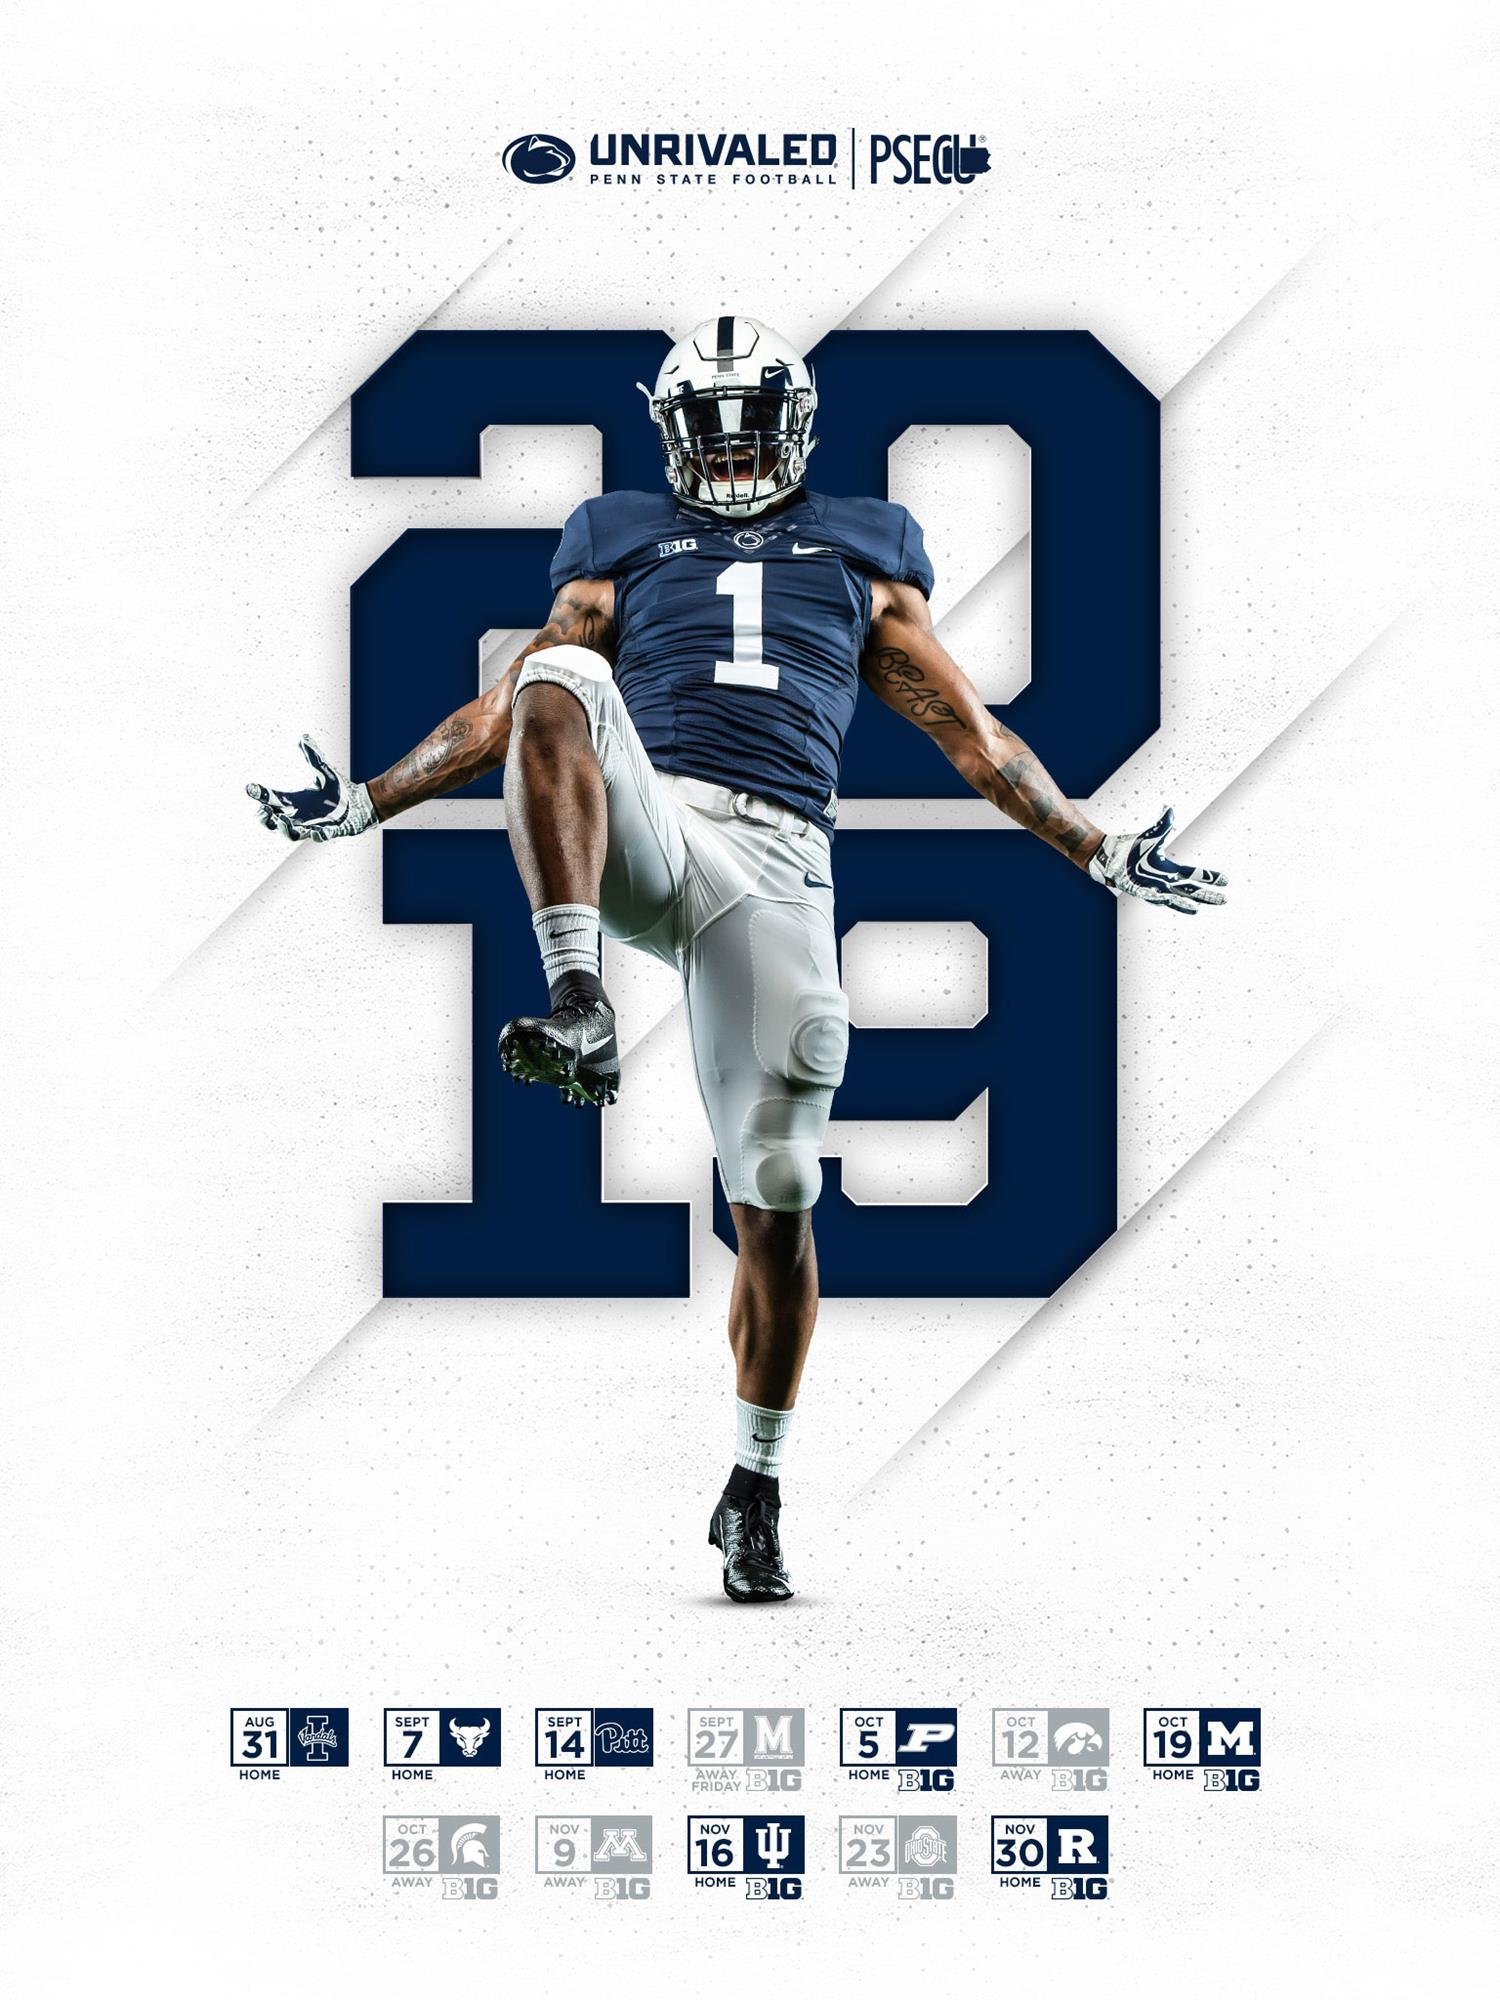 Penn State Home Football Schedule 2020.Wallpapers Penn State University Athletics